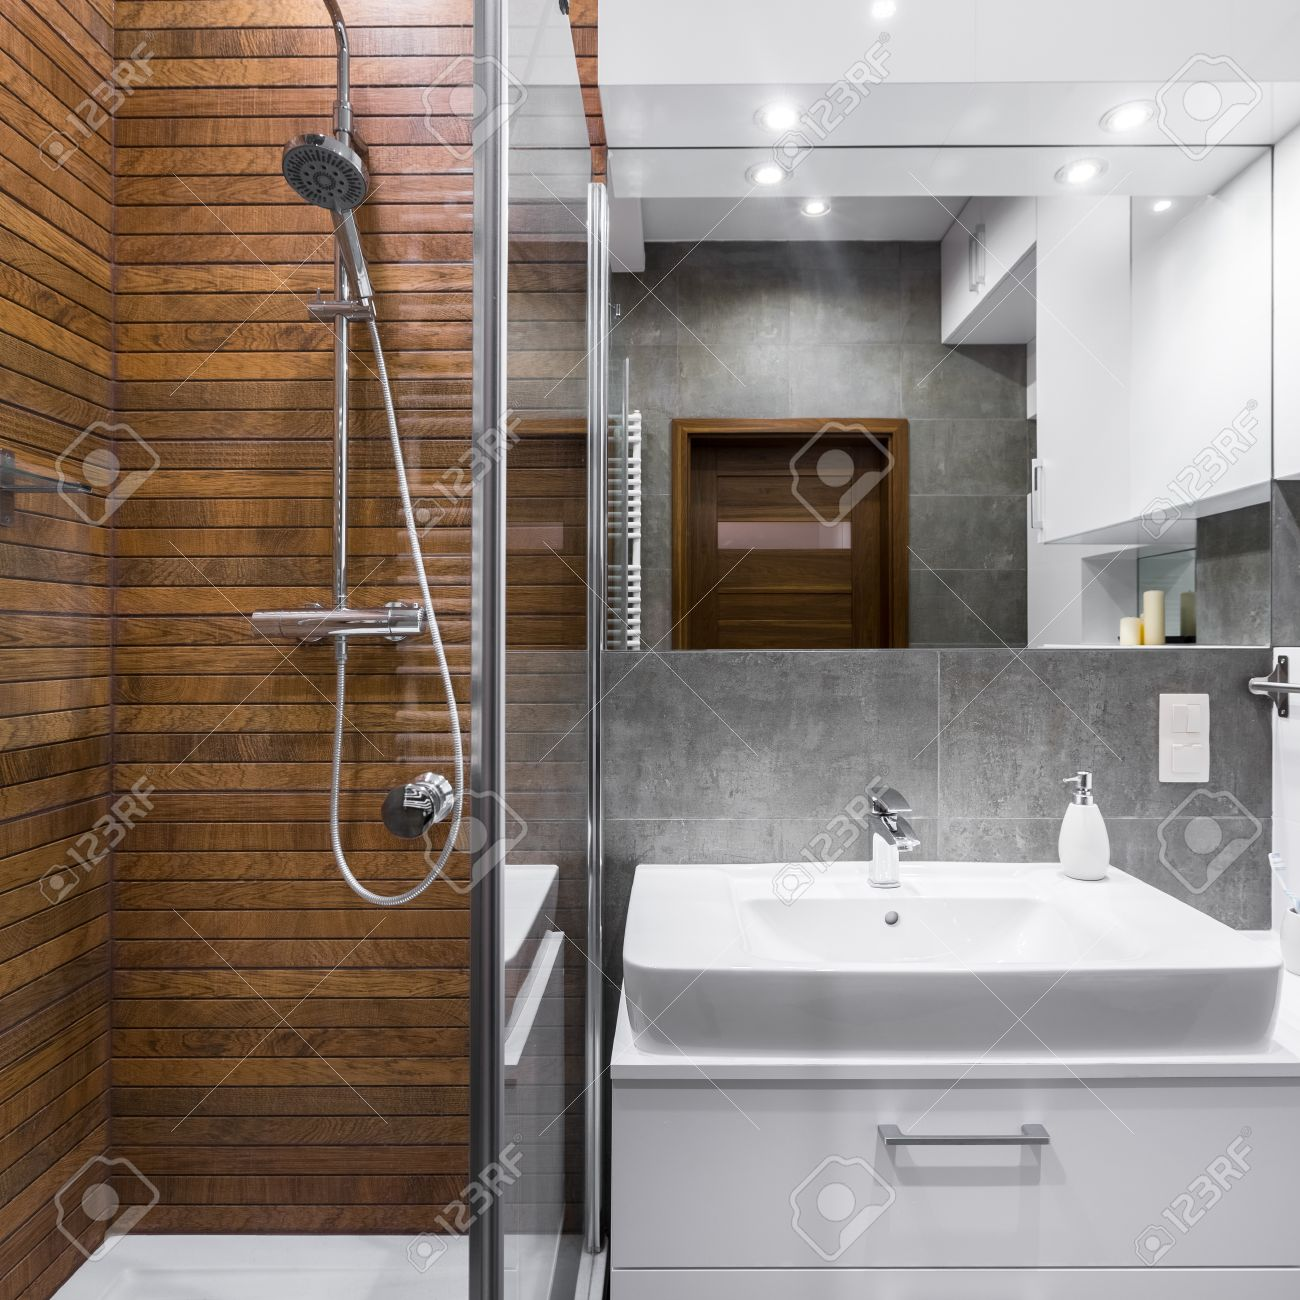 new style bathroom with wood effect tiles shower mirror and stock photo picture and royalty free image image 67105002